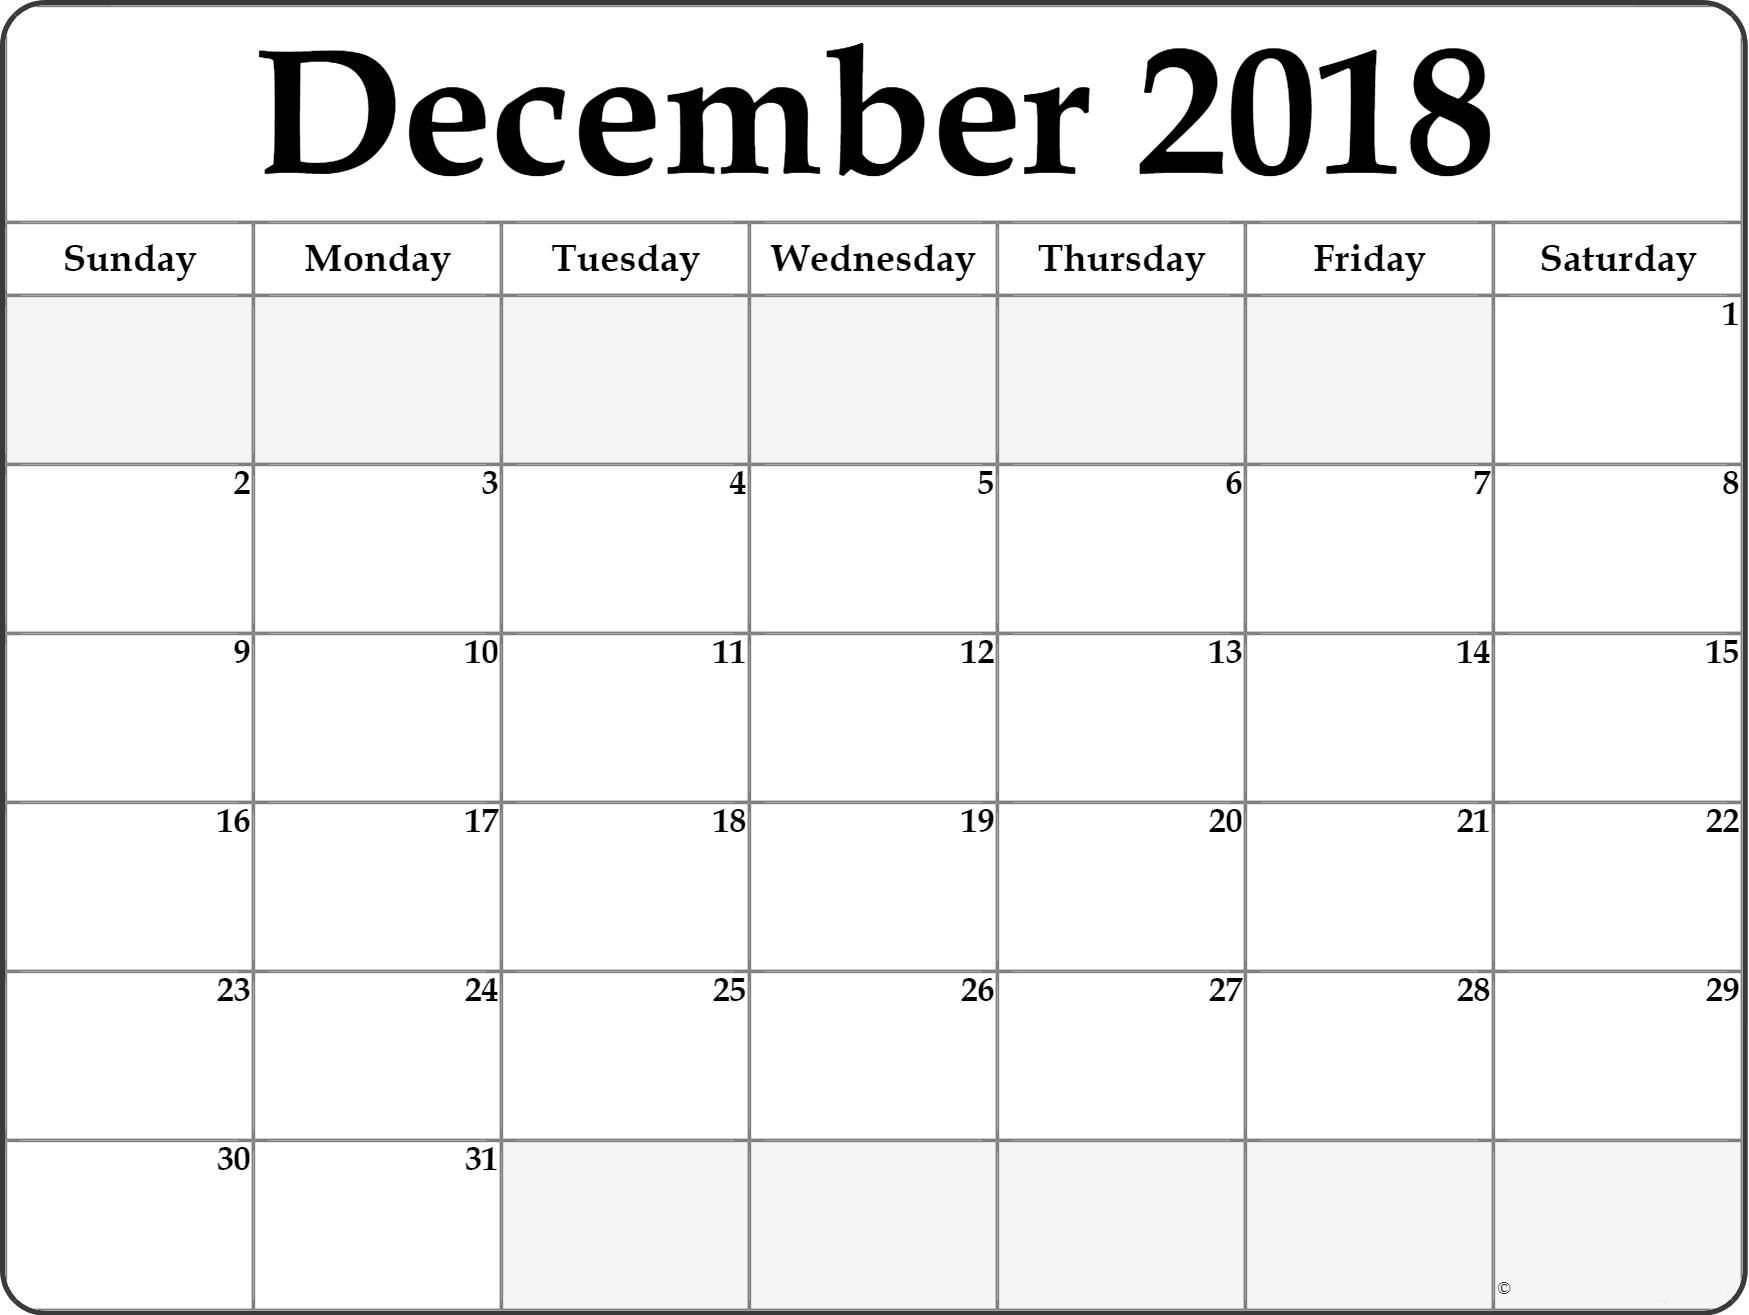 december 2018 calendar table design